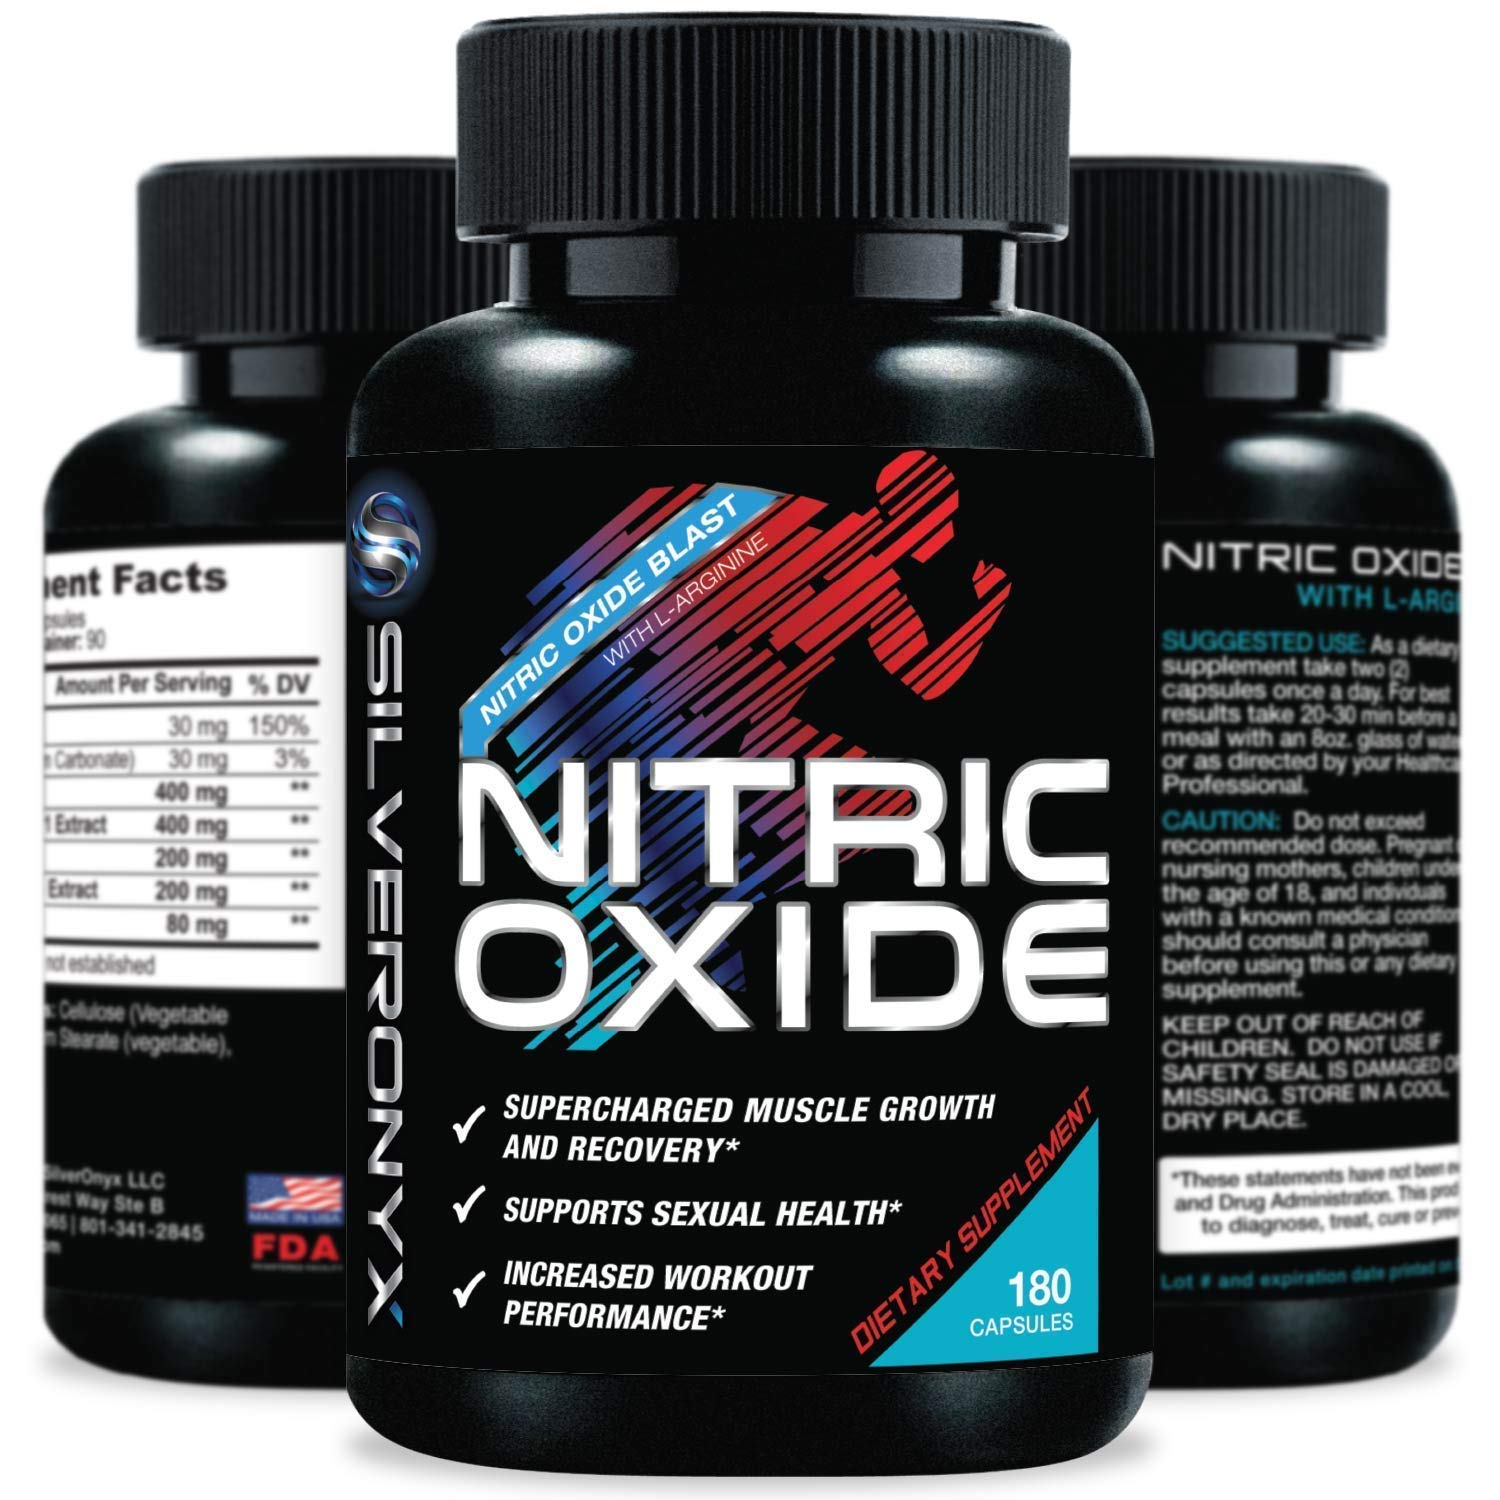 Extra Strength Nitric Oxide Supplement L Arginine 1300mg - Citrulline Malate, AAKG, Beta Alanine - Premium Muscle Building No Booster for Strength, Vascularity & Energy to Train Harder - 180 Capsules